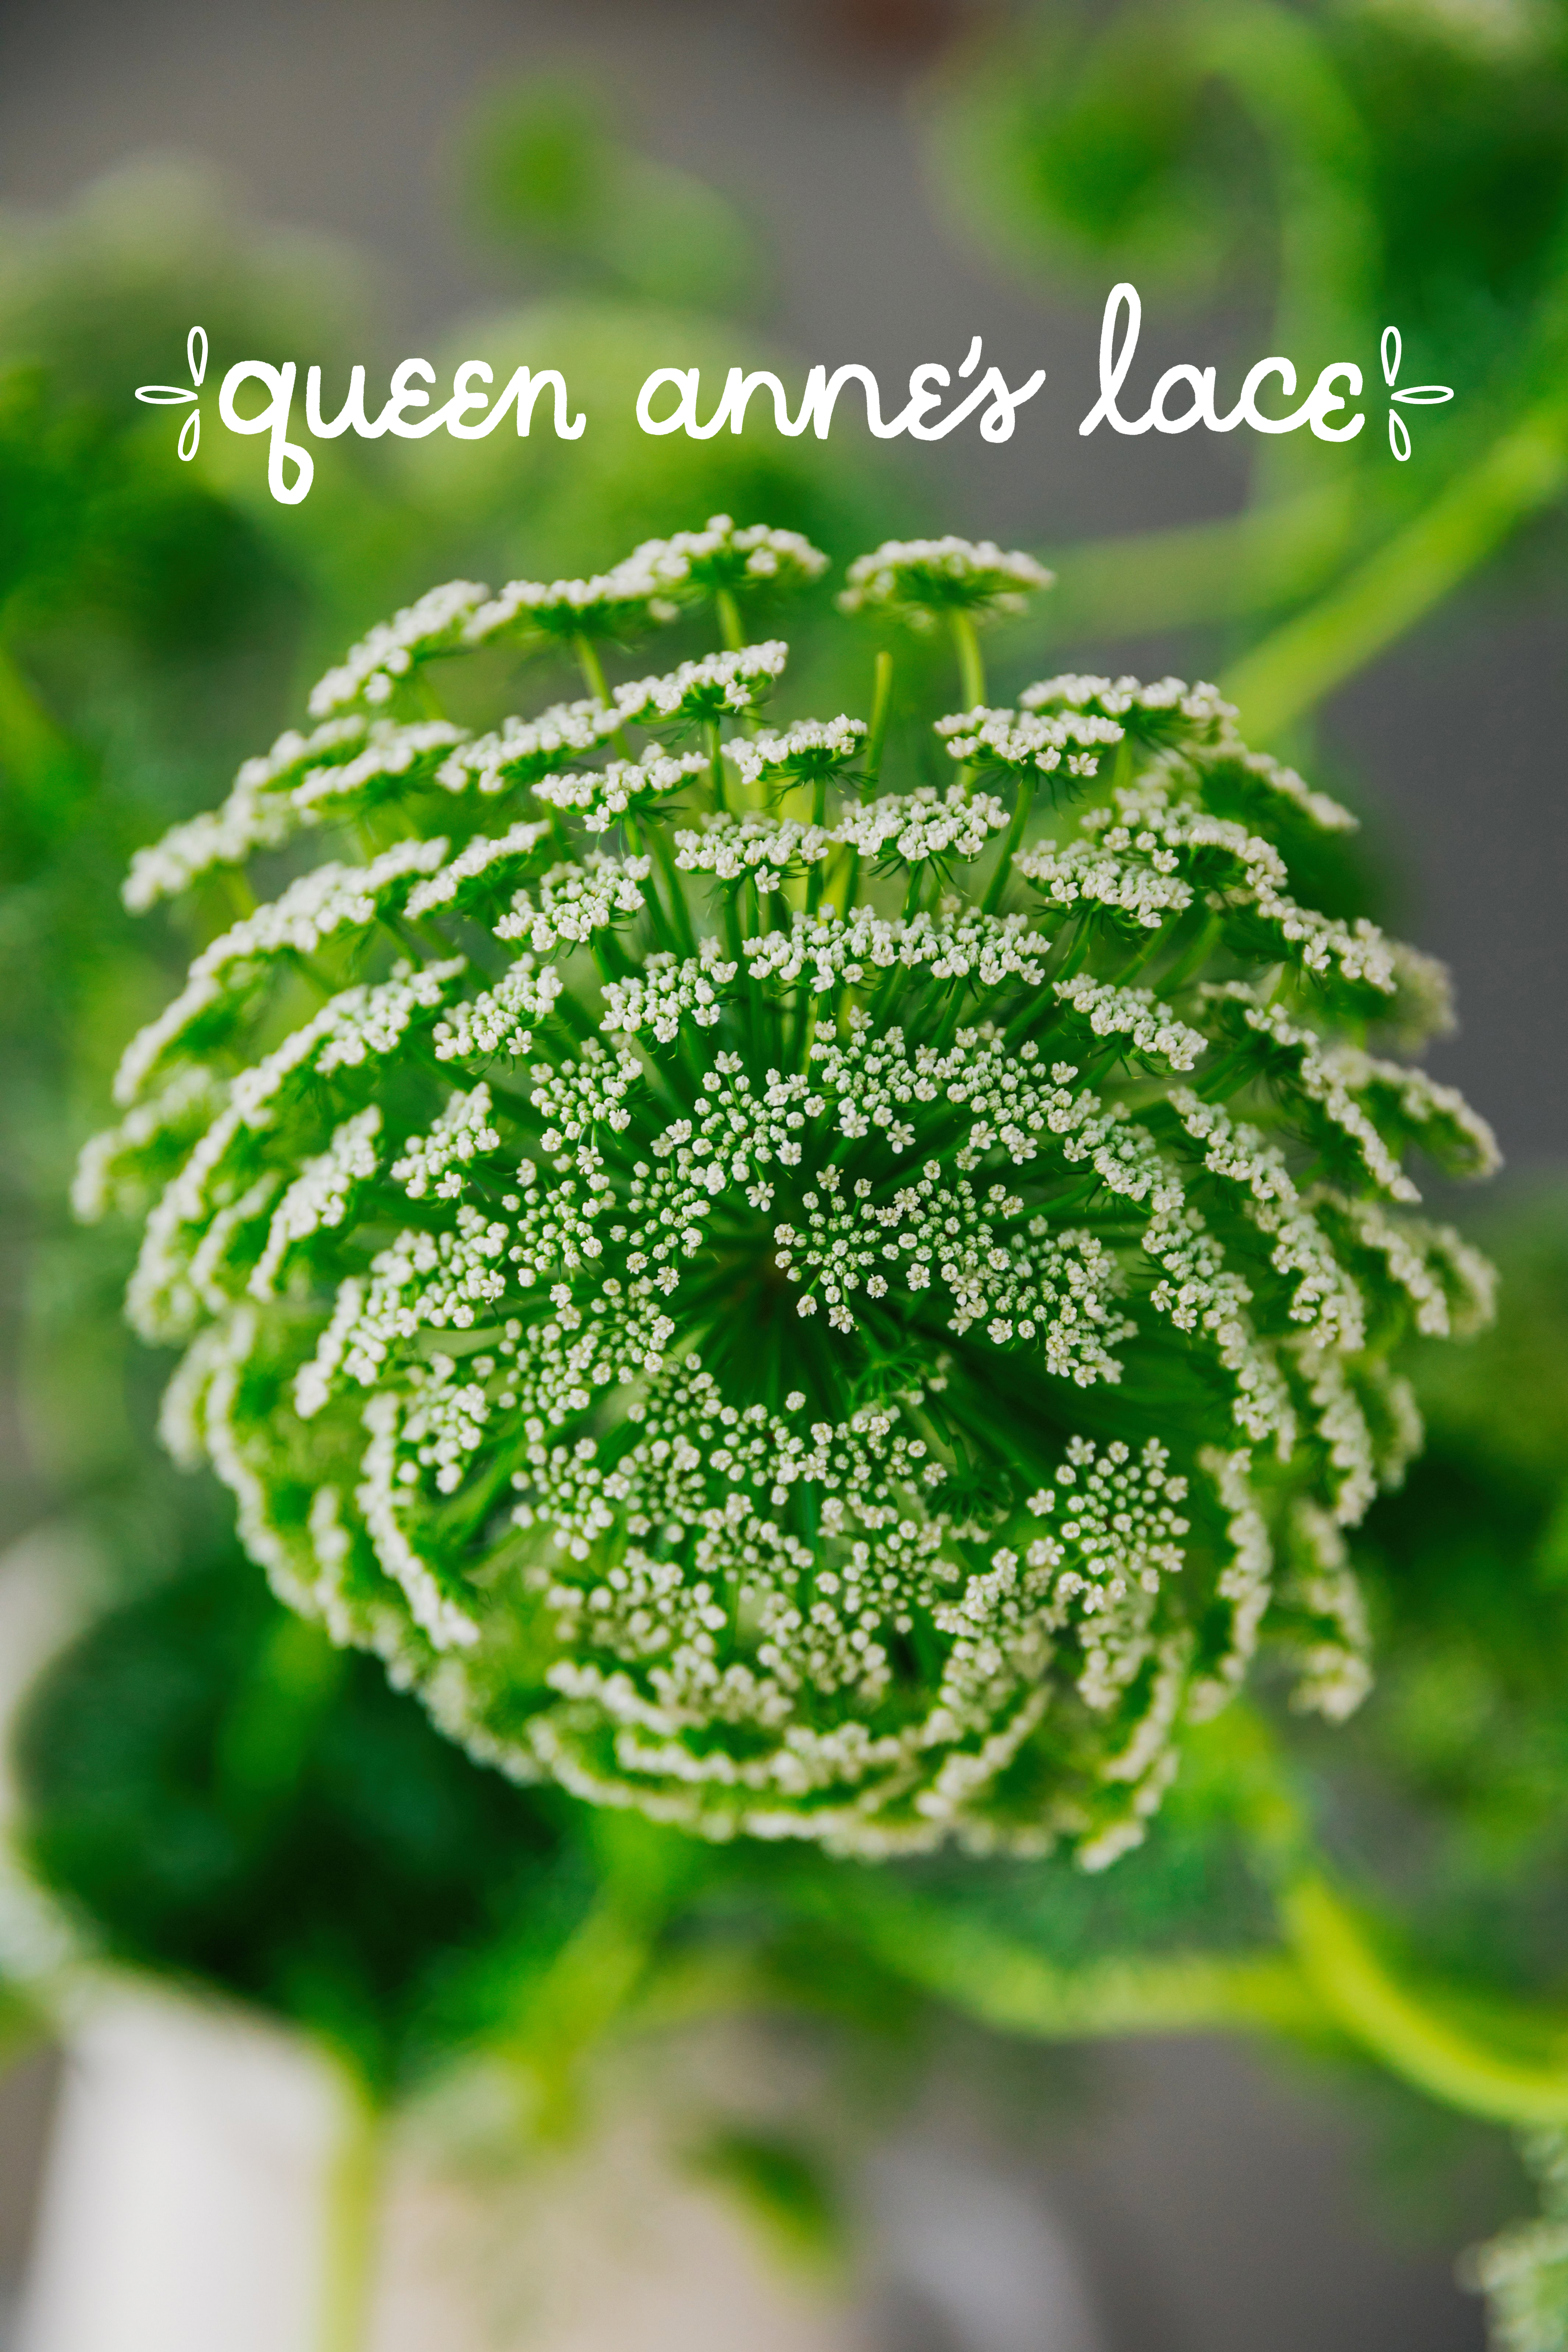 Queen Anne's Lace - California State Floral Association